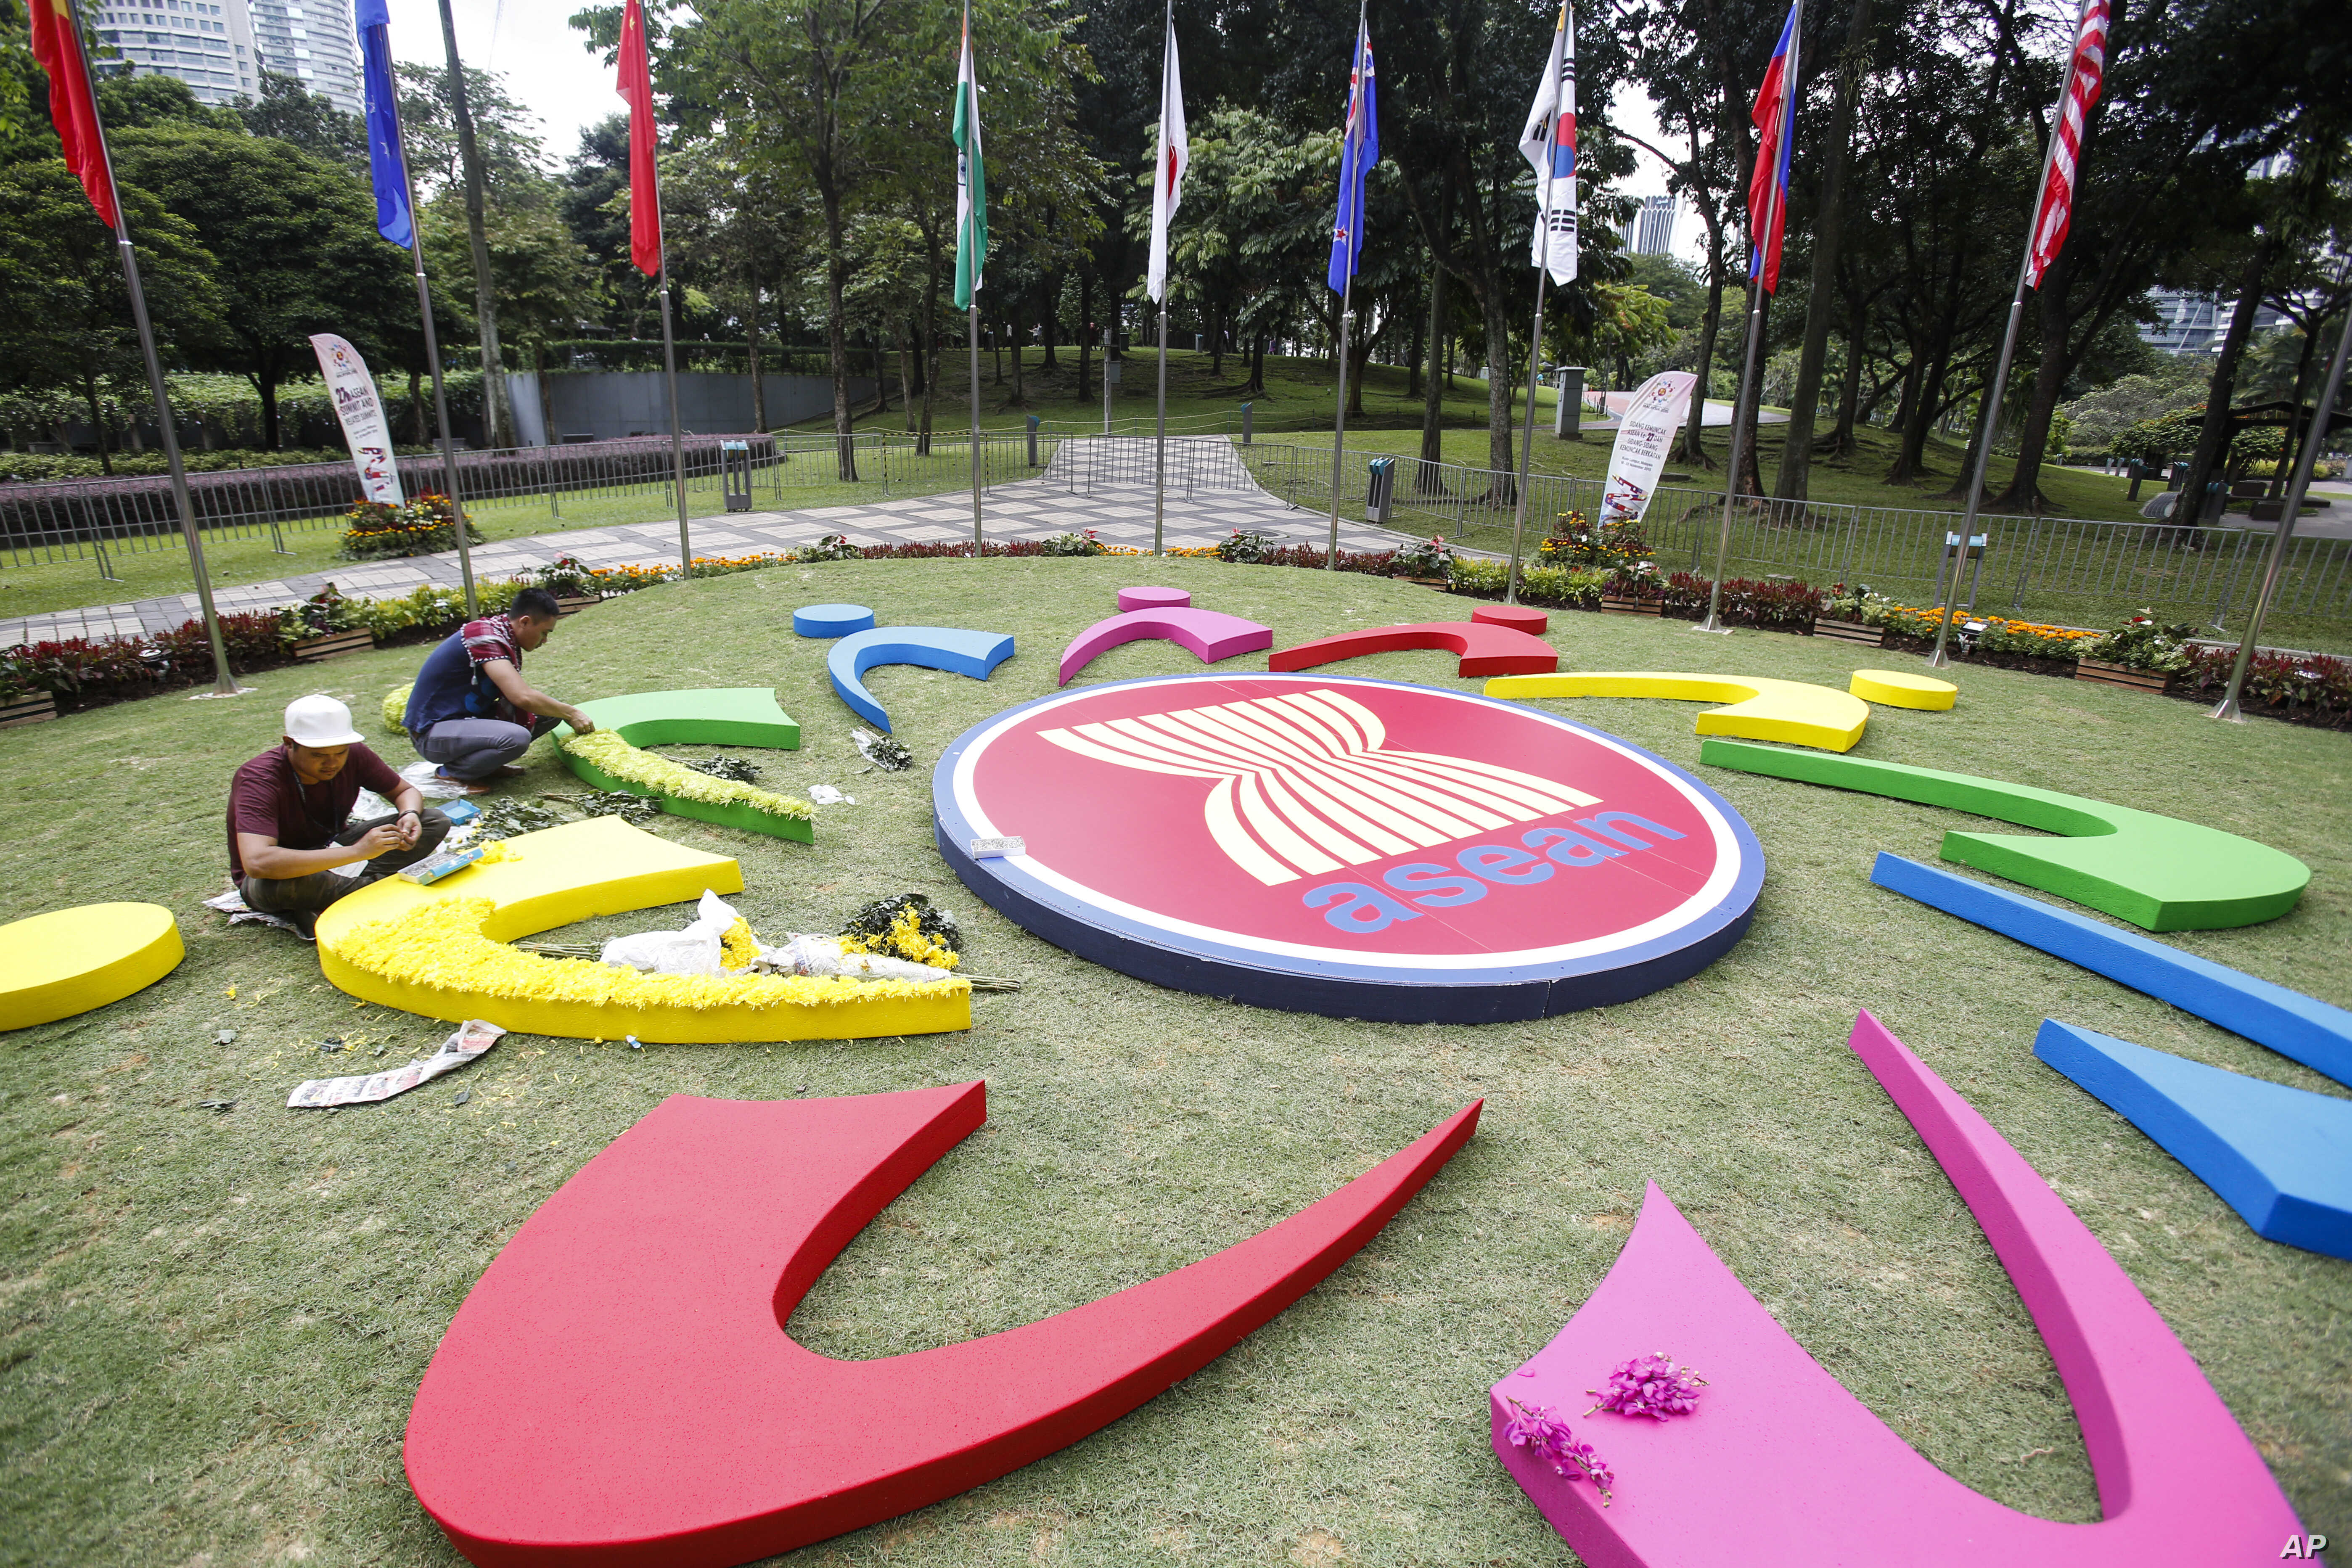 Workers add final touches to the ASEAN logo at the 27th Association of Southeast Asian Nations (ASEAN) summit in Kuala Lumpur, Malaysia, Nov. 19, 2015.